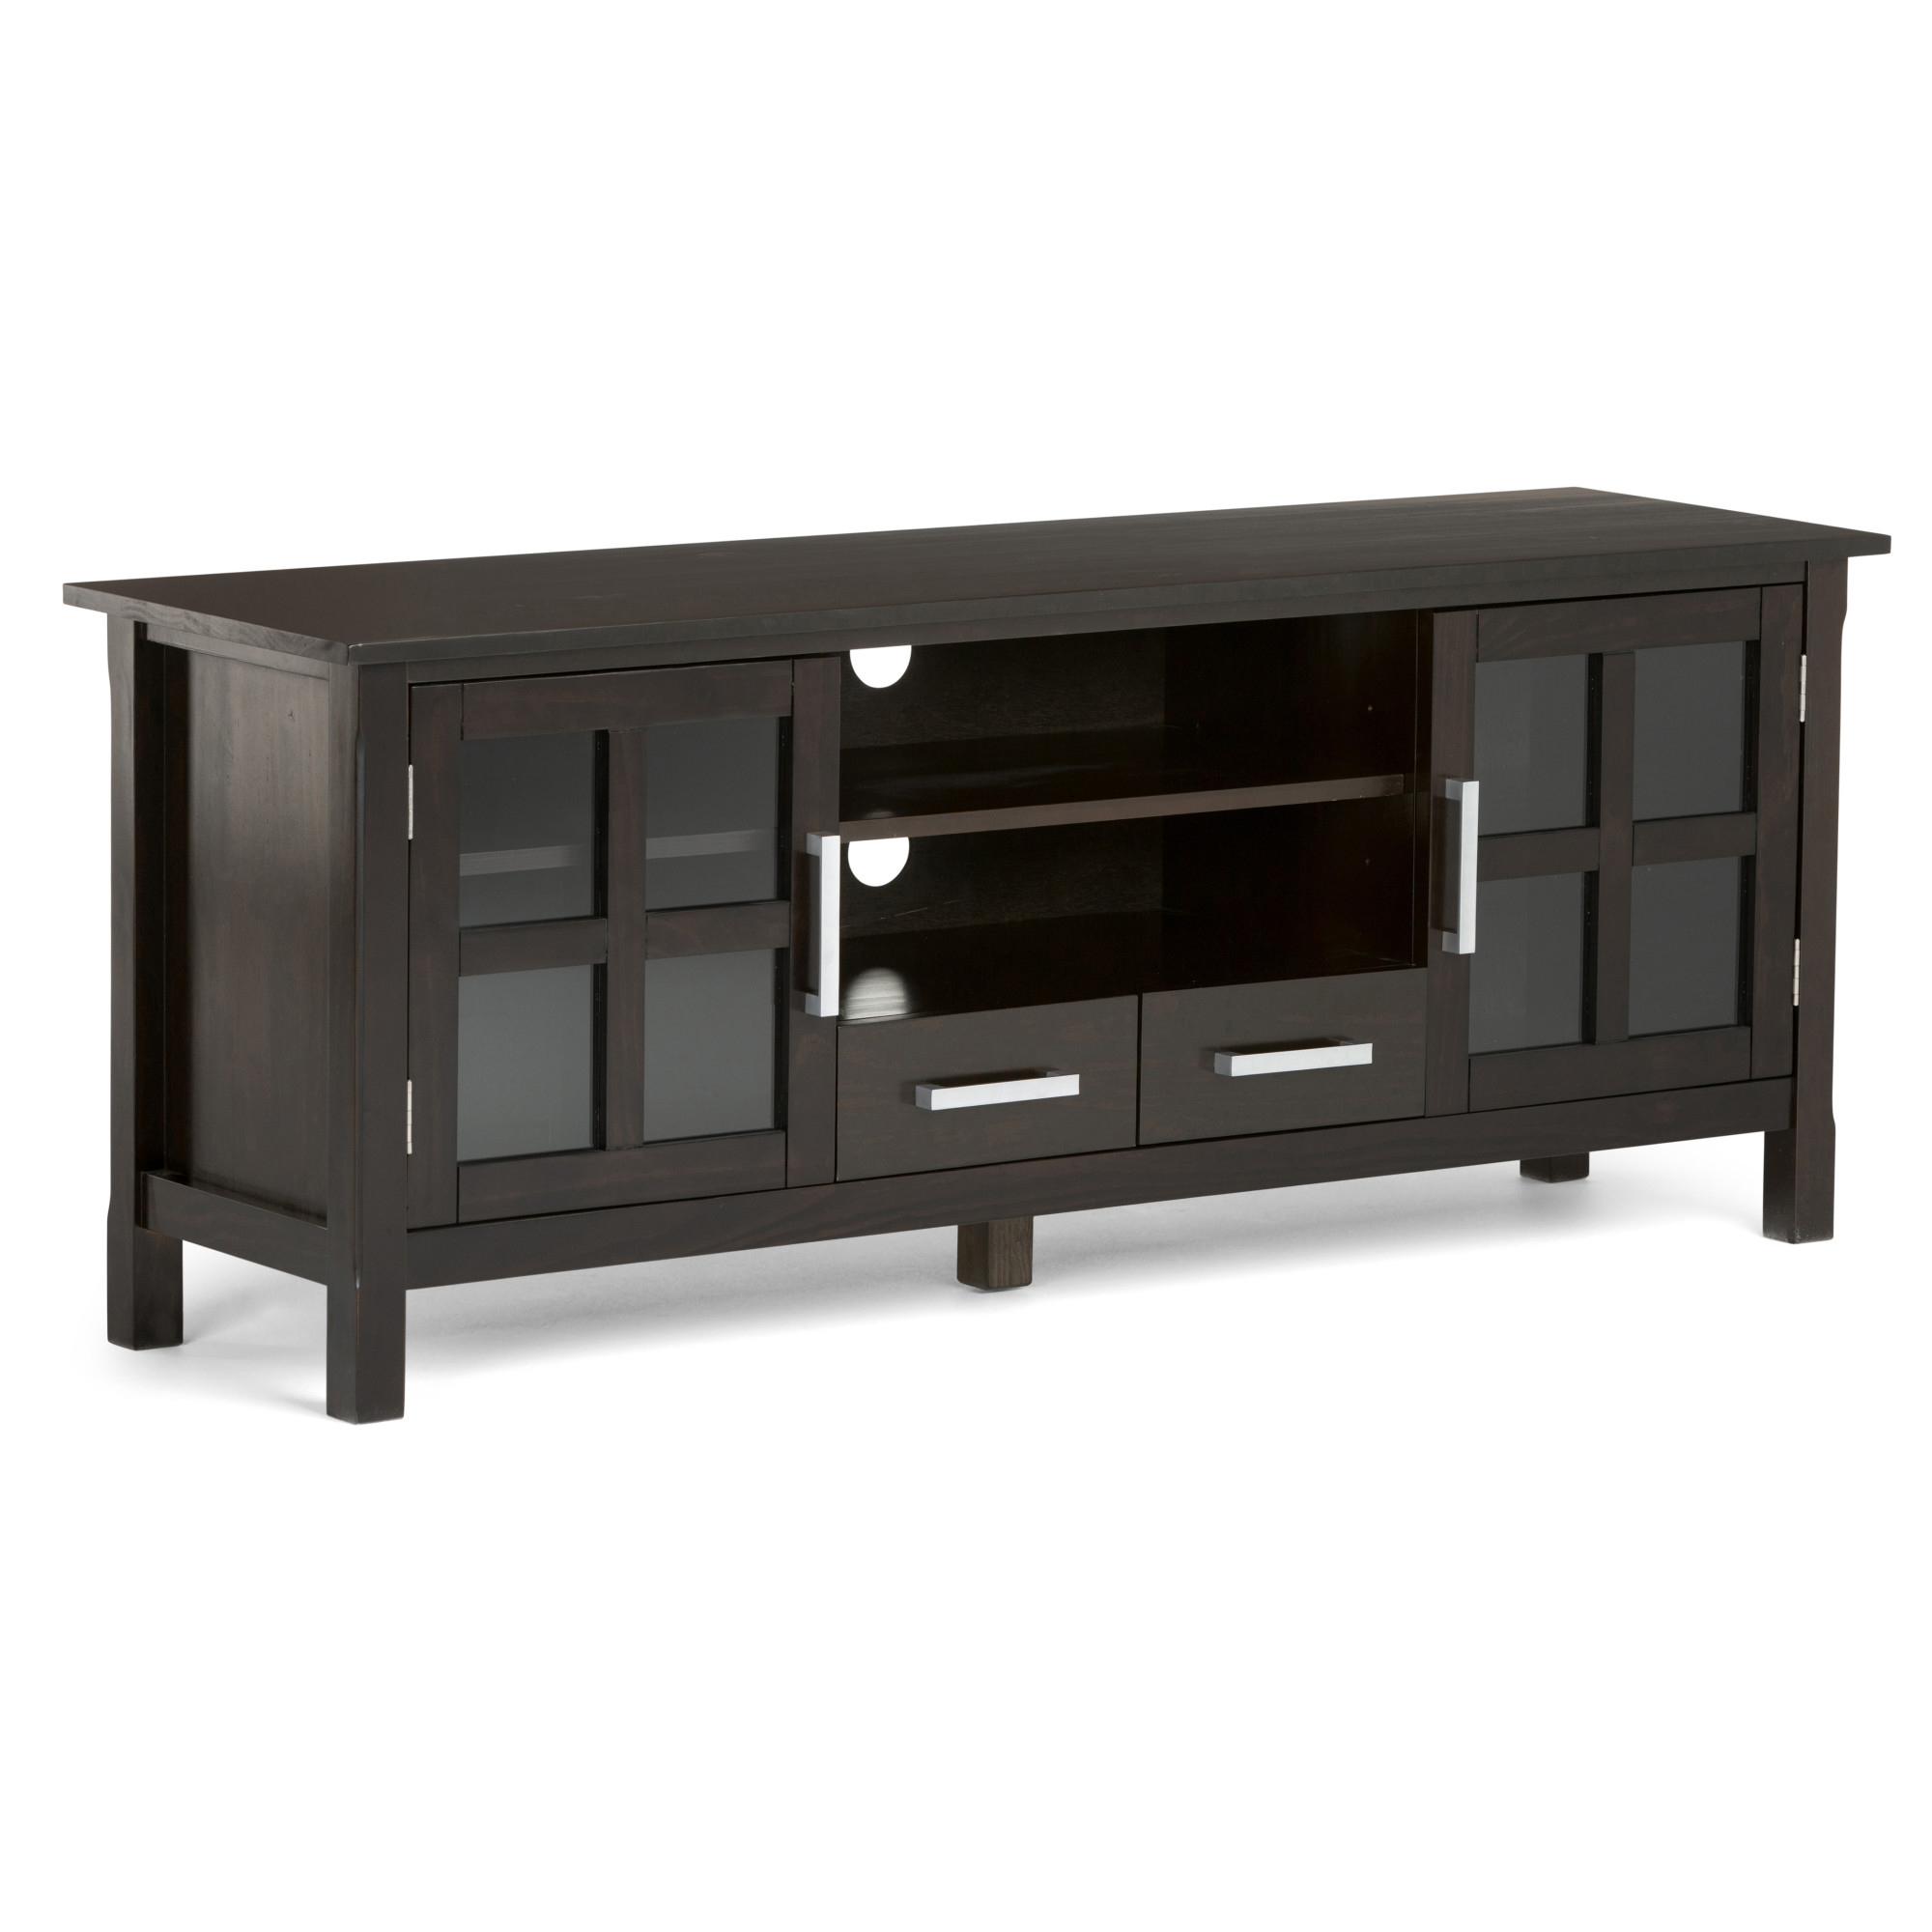 Bromley Extra Wide Oak Tv Stands Throughout Well Known Brooklyn + Max Providence Solid Wood 60 Inch Wide (View 11 of 25)